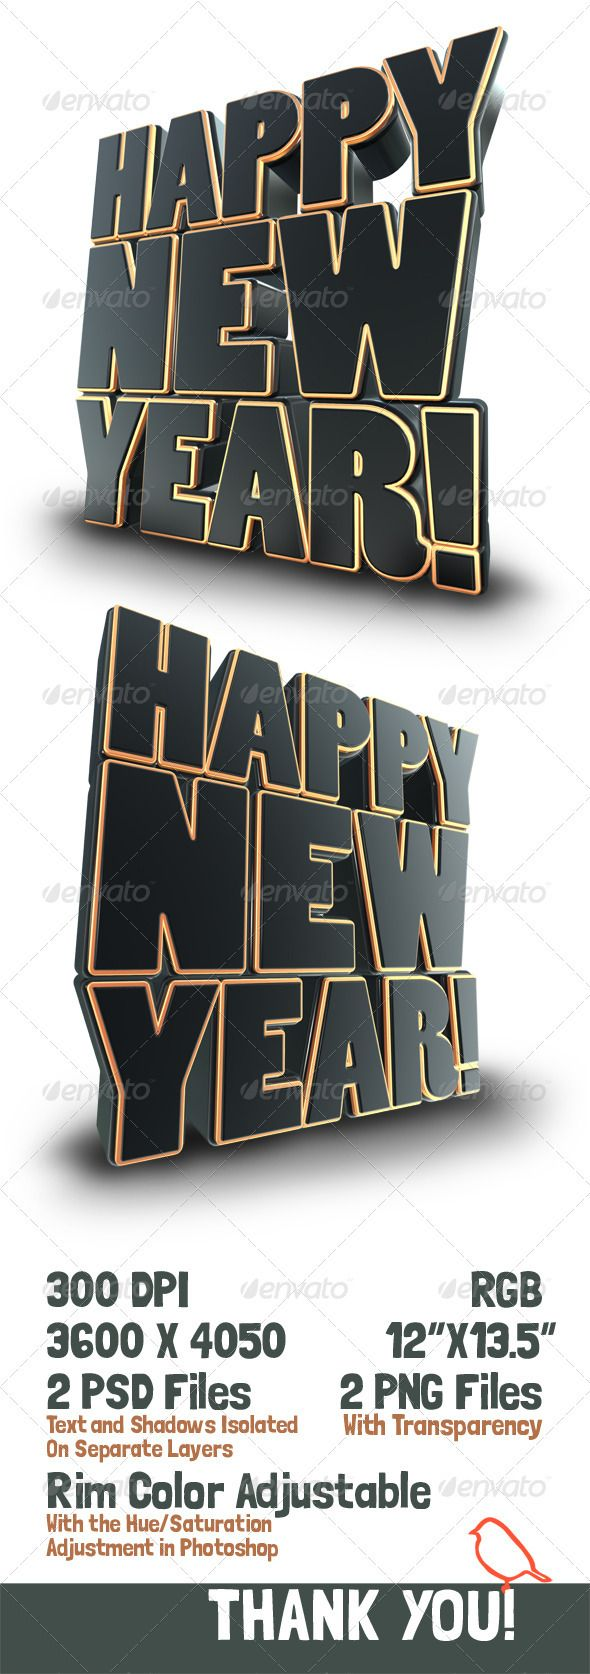 Happy New Year 3D Text Render